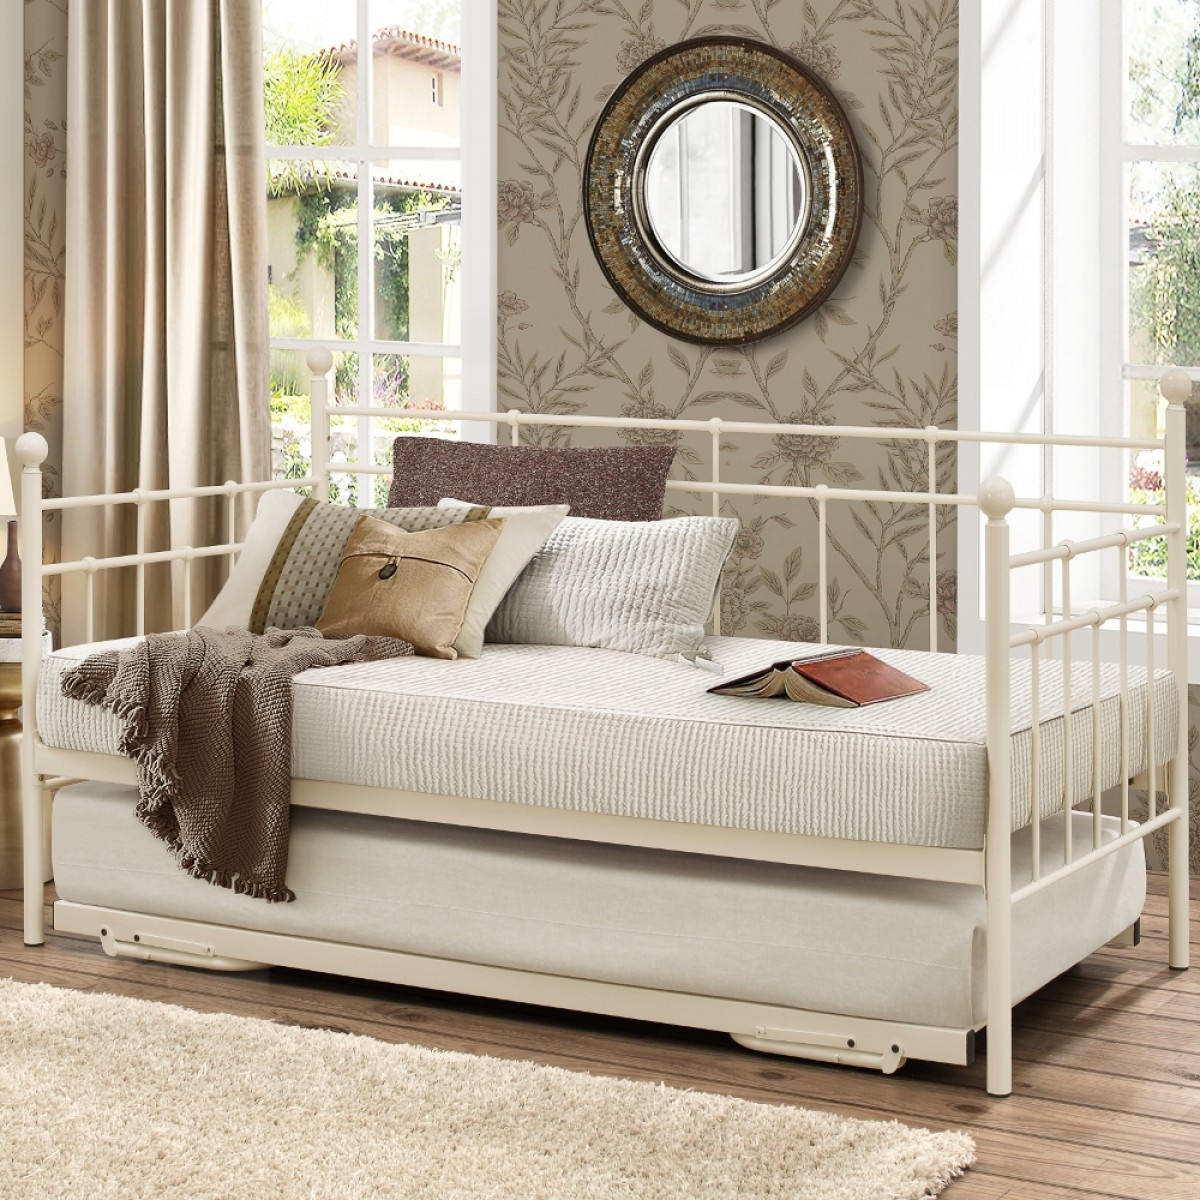 lyon cream metal guest bed with trundle. Black Bedroom Furniture Sets. Home Design Ideas